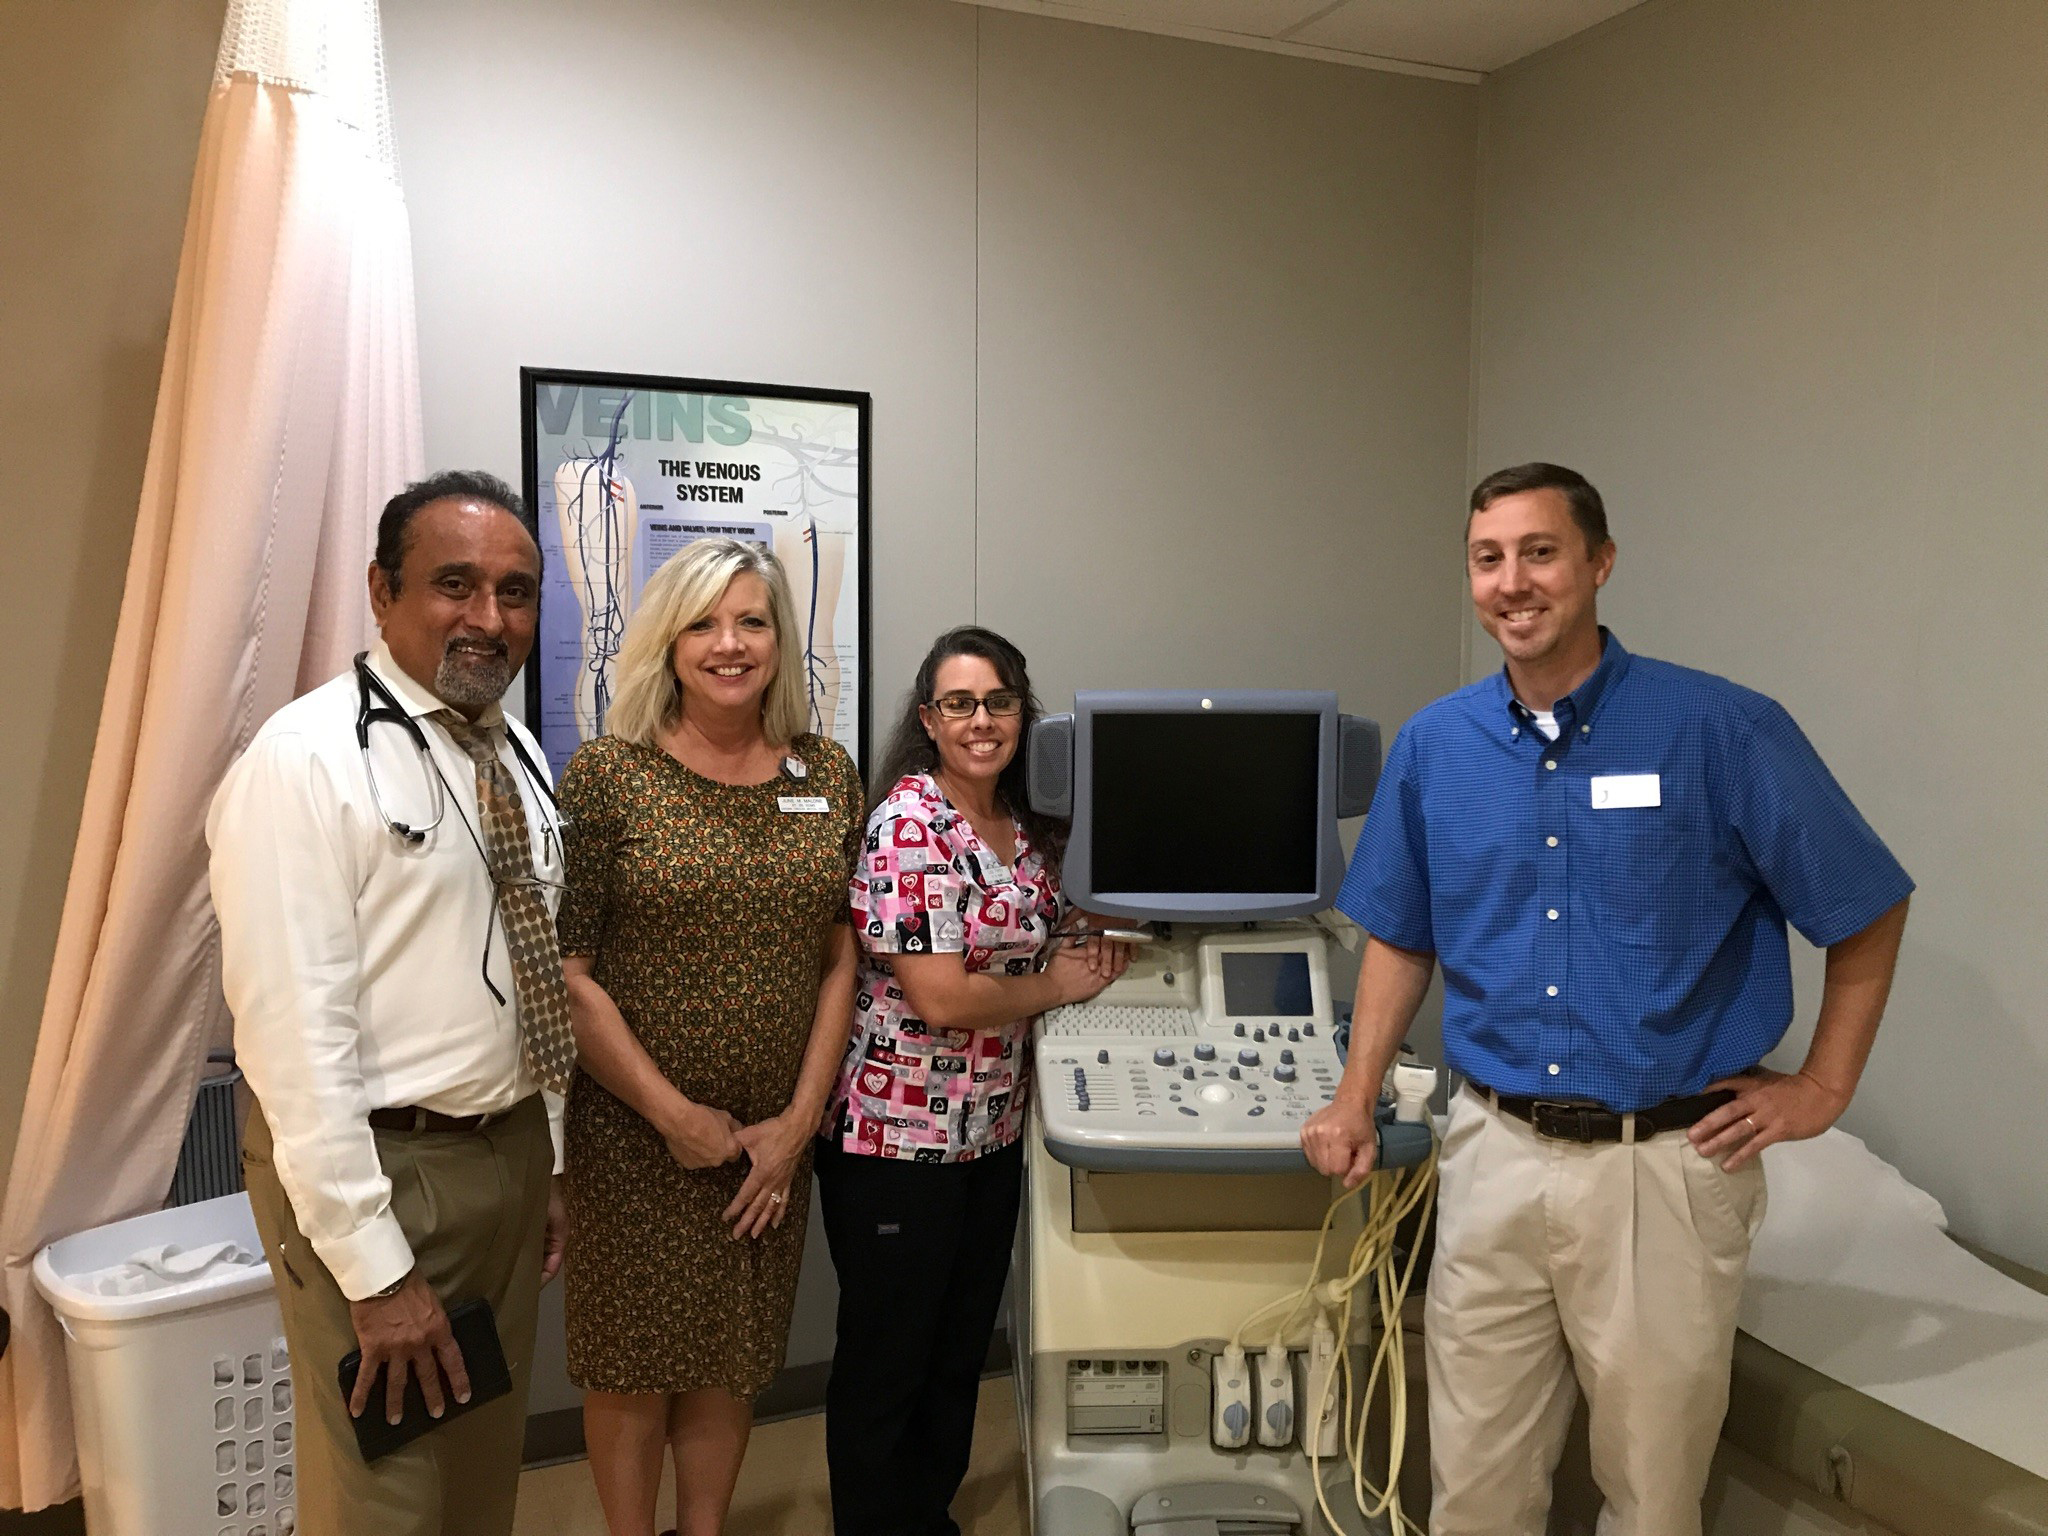 Dr. P.K. Vyas, June Malone, and Lisa Penny, of Eastern Carolina Medical Center; and Steven Penny, JCC sonography instructor, are pictured with the donated ultrasound machine.